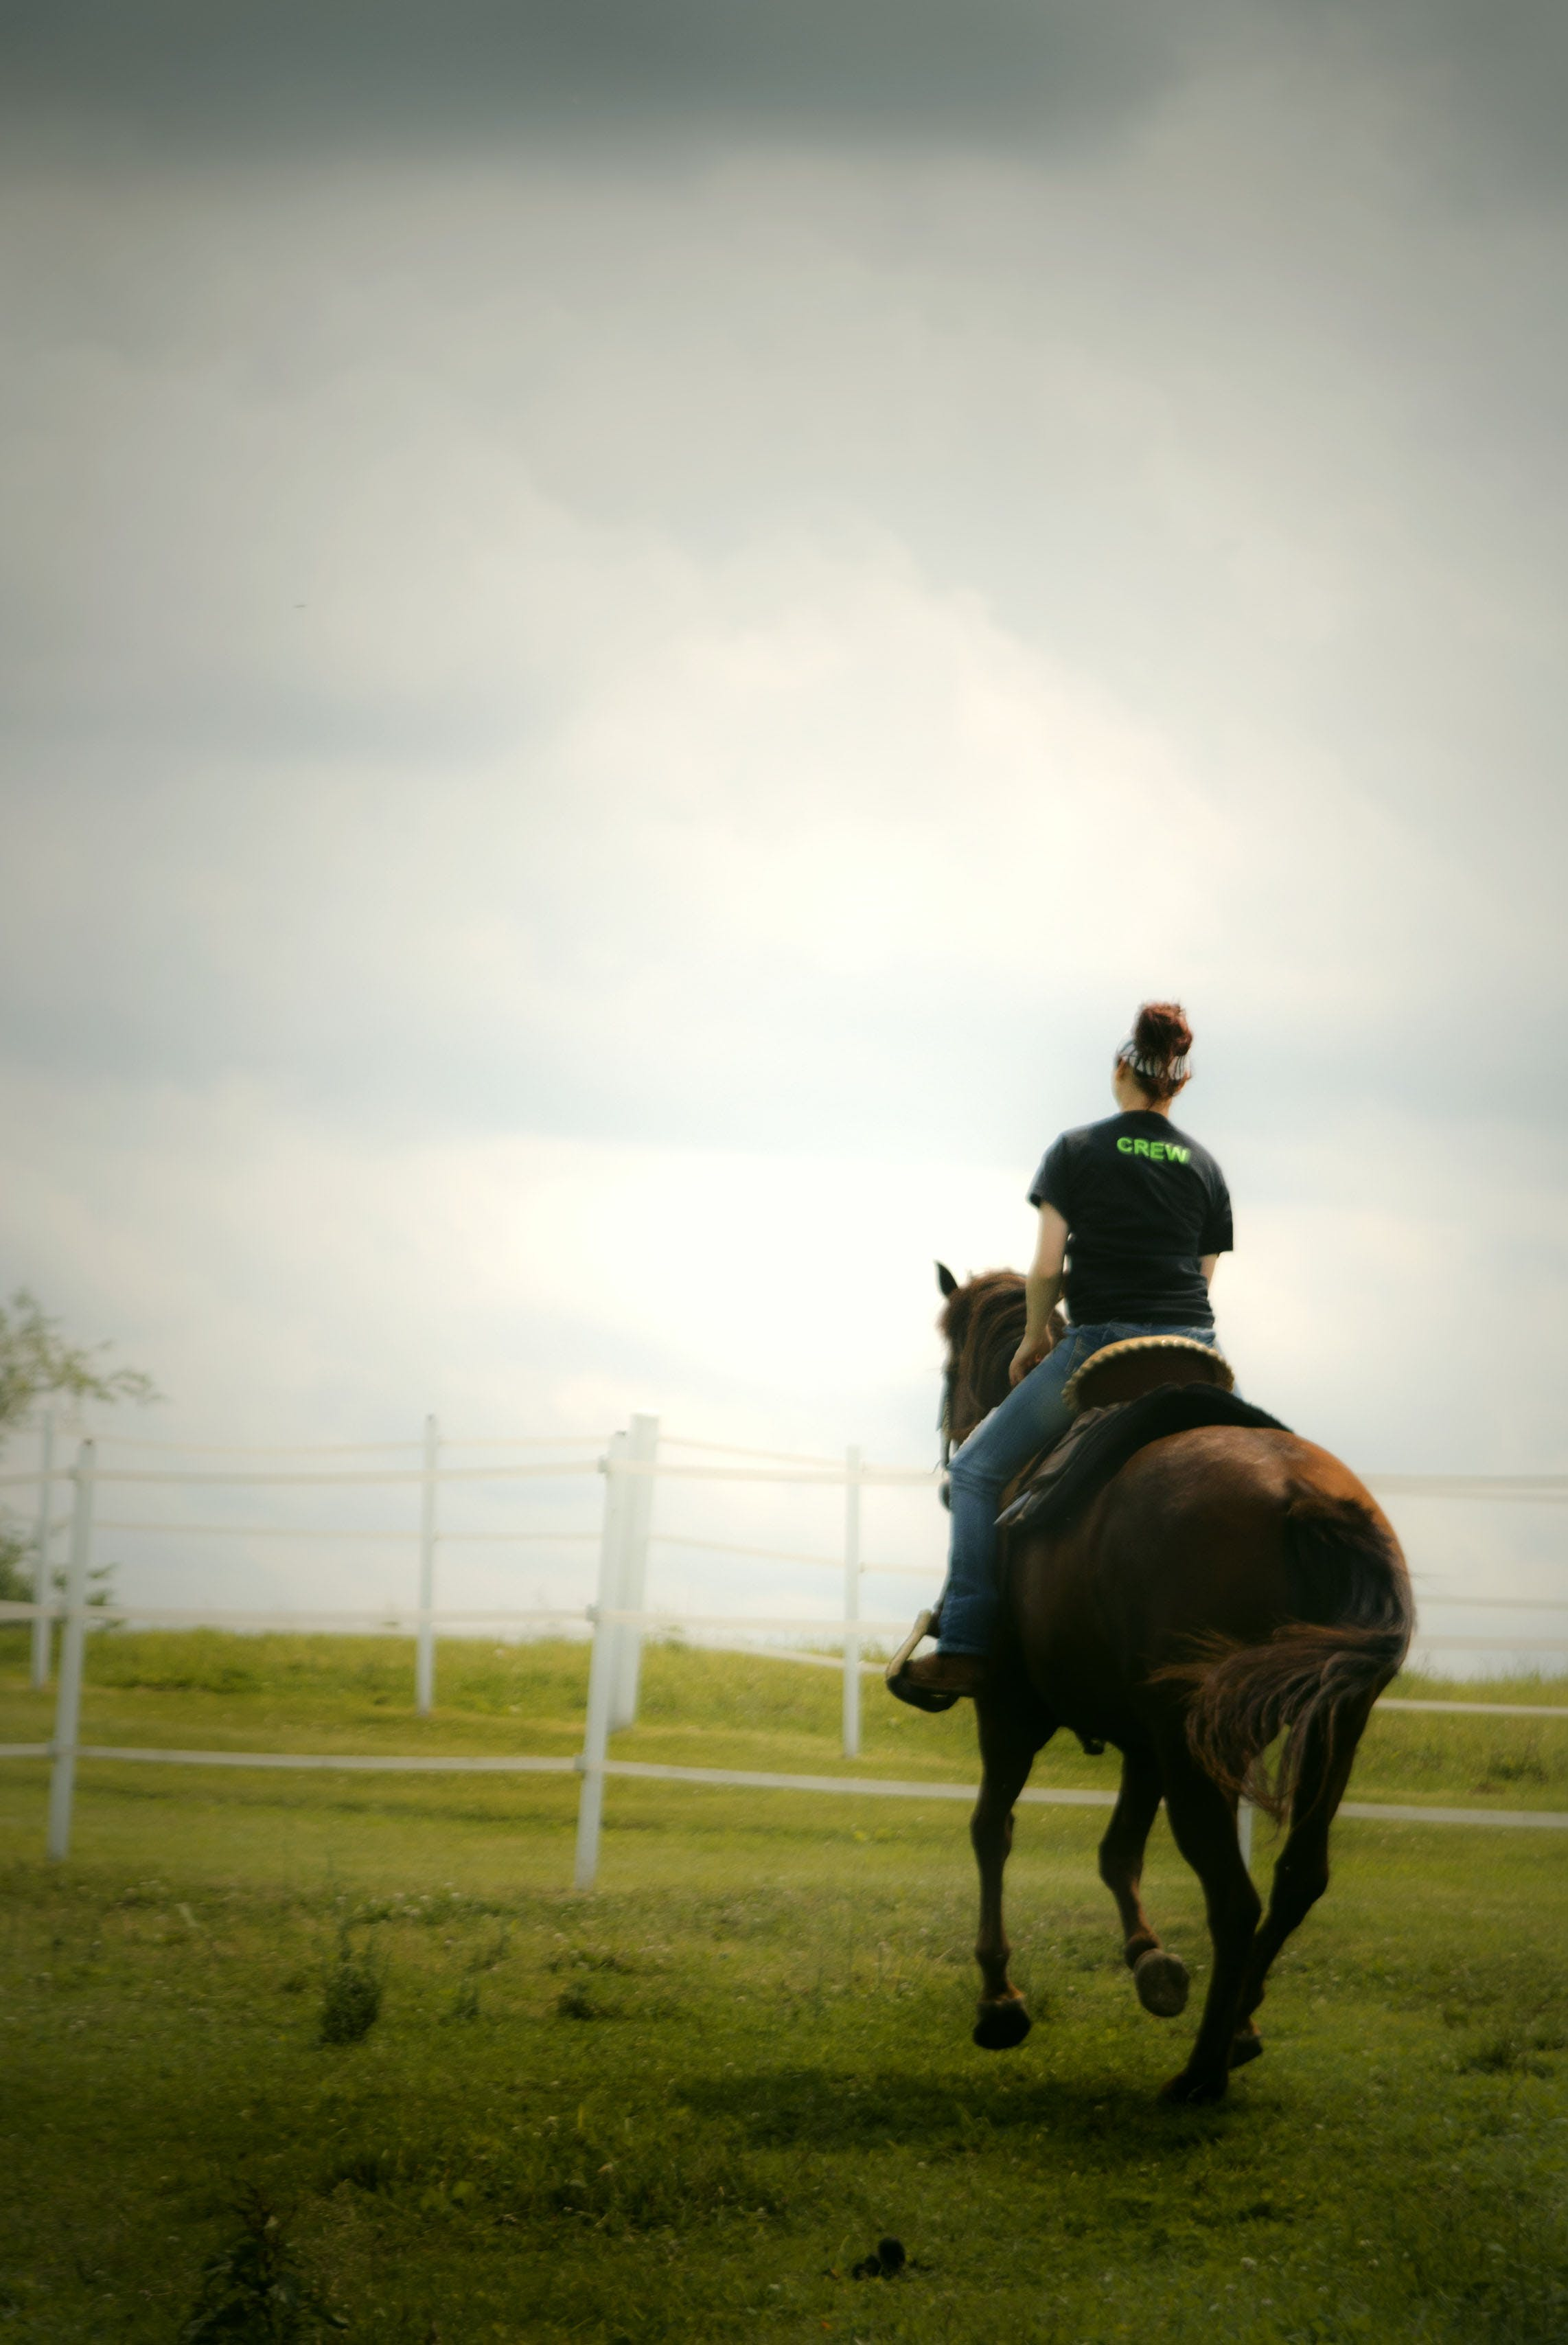 Woman Horse Backriding on Grass Lawn